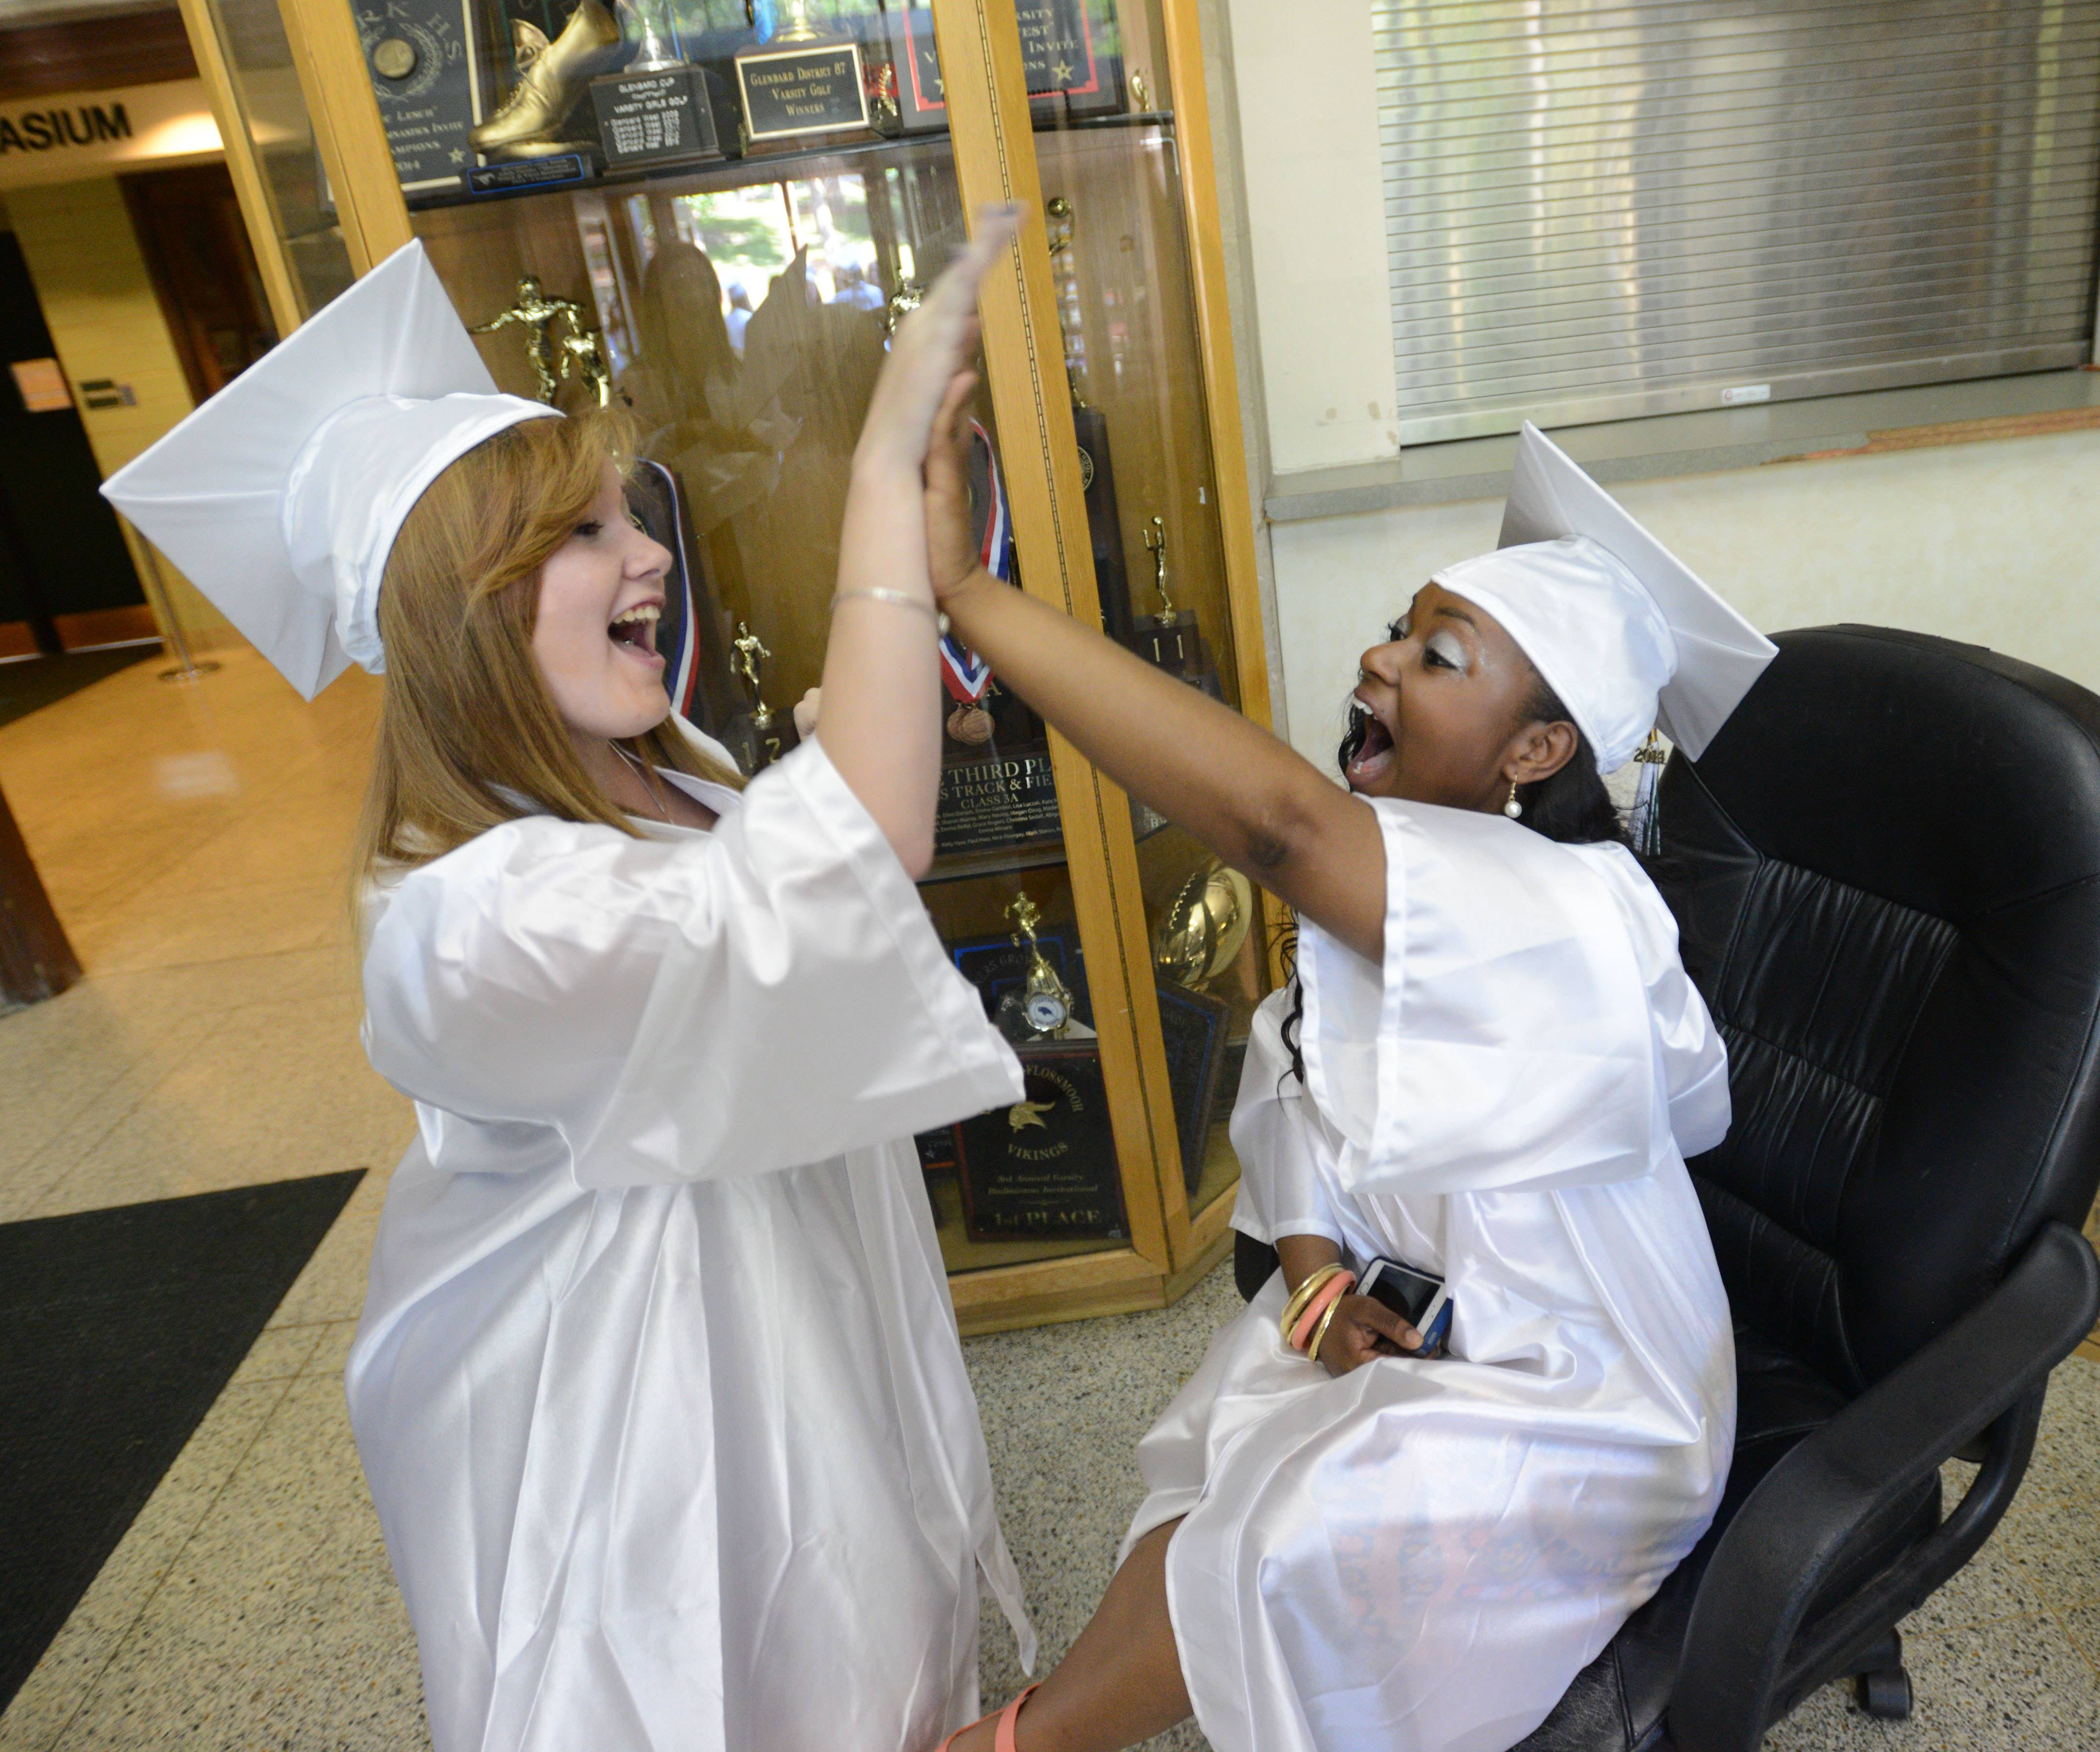 Alyssa O'Brien,18, of Glendale Heights and Kiana Whitley ,18, of Glen Ellyn high five before the Glenbard West High School graduation ceremony Friday.